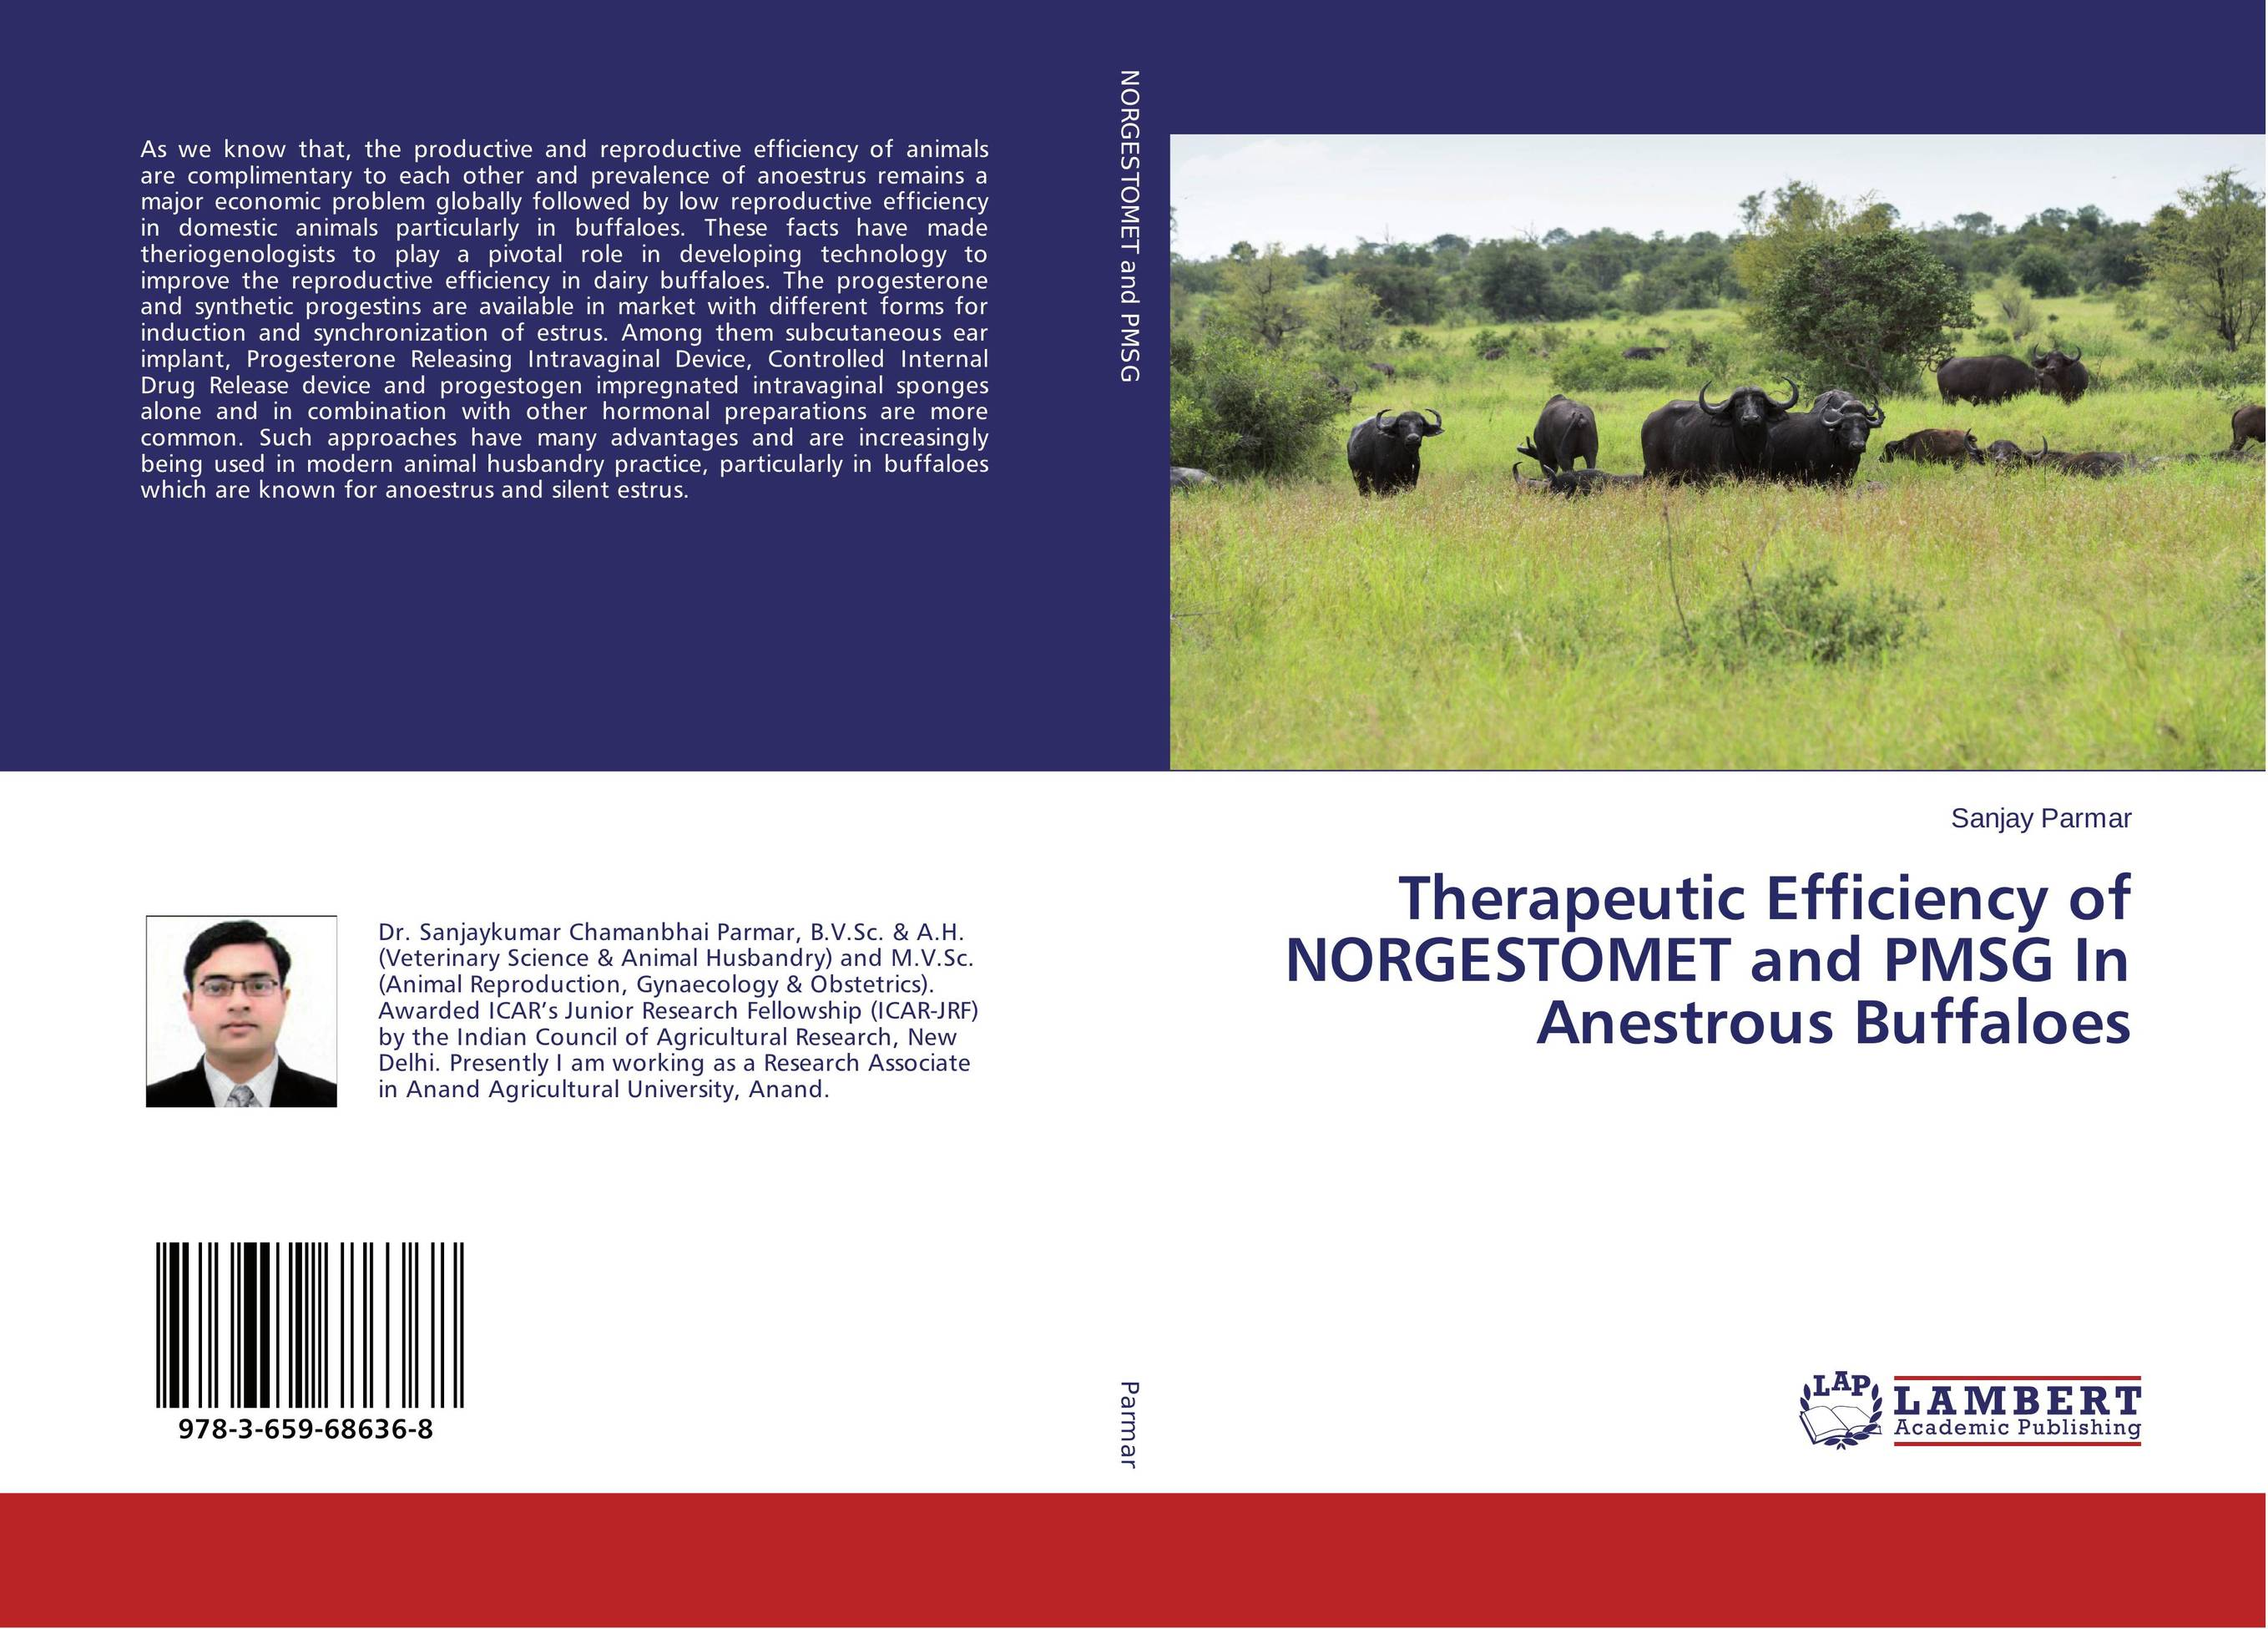 Therapeutic Efficiency of NORGESTOMET and PMSG In Anestrous Buffaloes therapeutic efficiency of norgestomet and pmsg in anestrous buffaloes